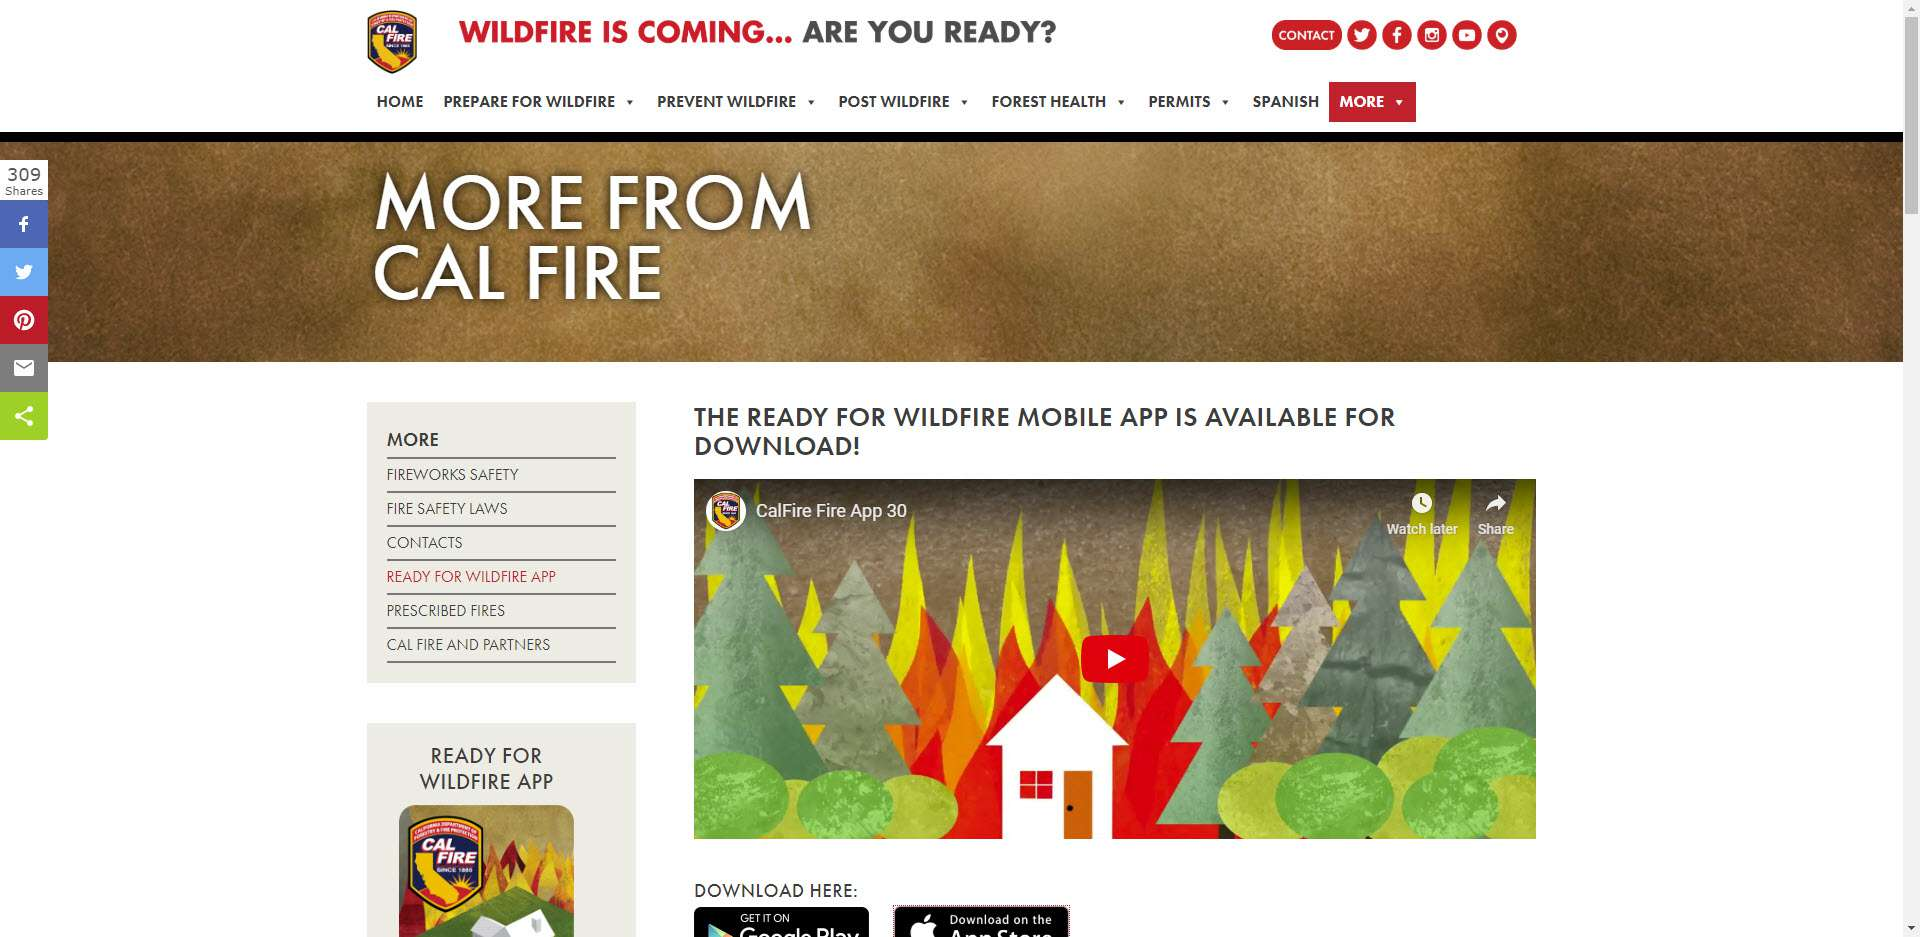 Screenshot of the Cal Fire website for the Ready For Wildfire App.